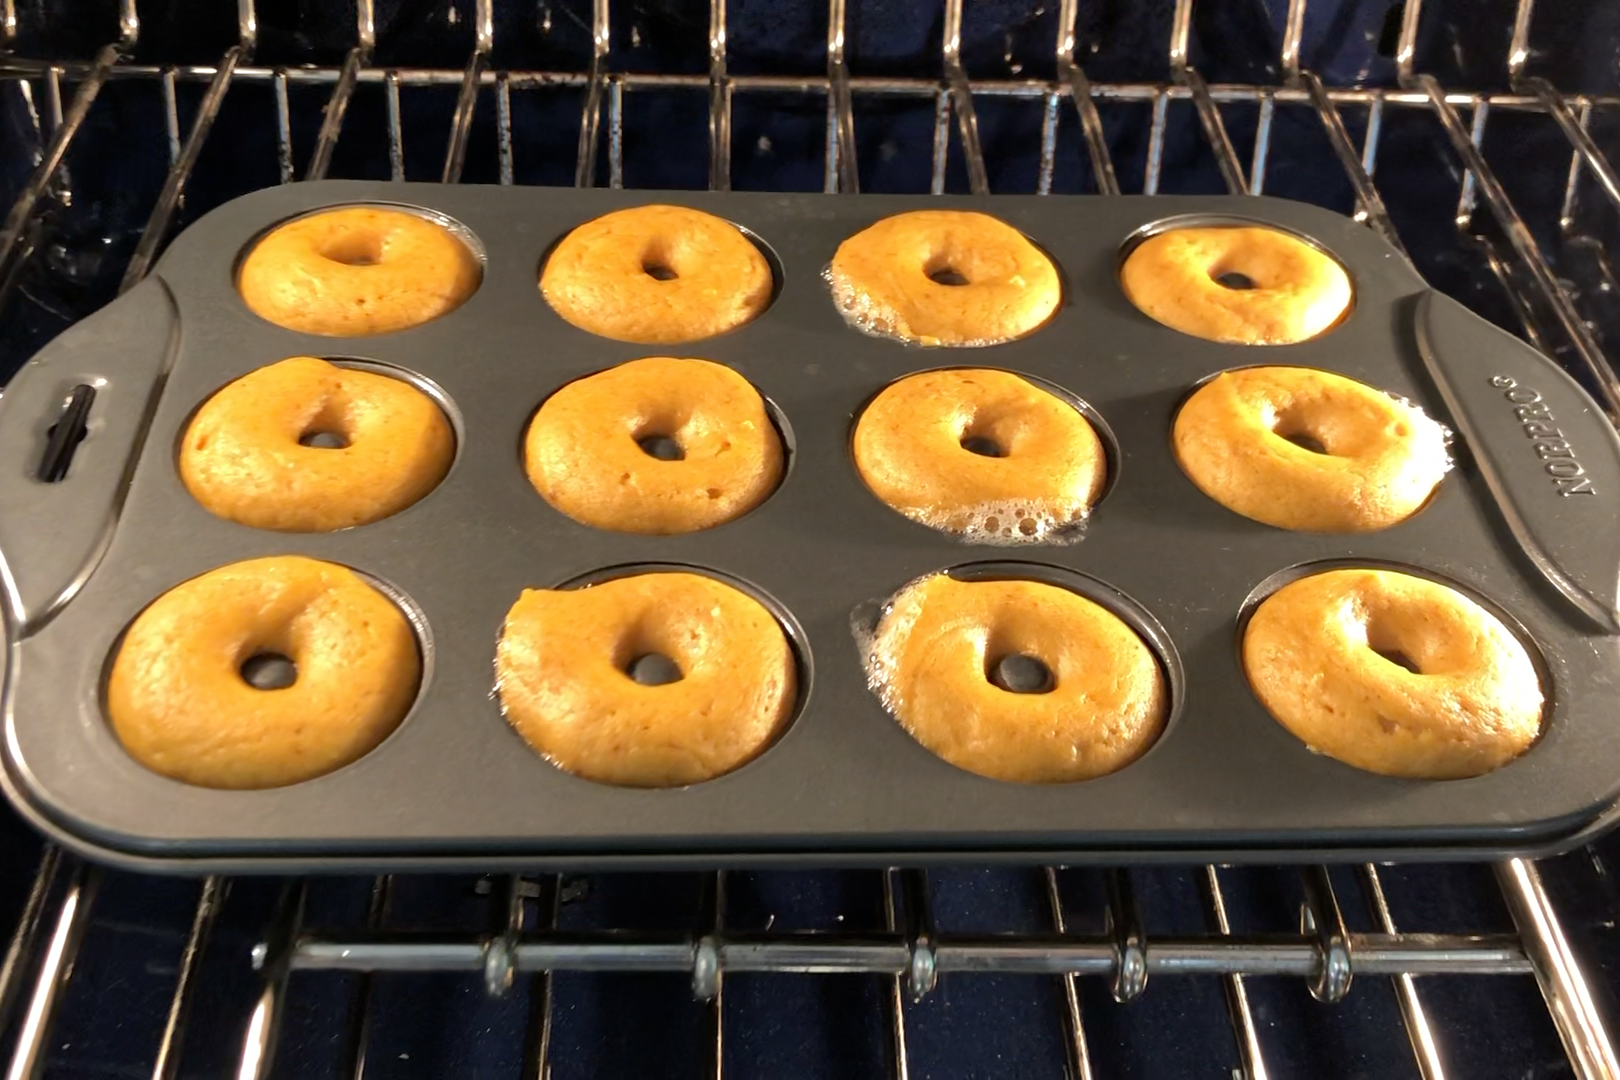 7. Bake for 13-15 minutes, until the donuts are lightly golden and spring back when touched. Let the donuts cool in the donut pan for about 5 minutes before transferring to cooling racks to cool. -